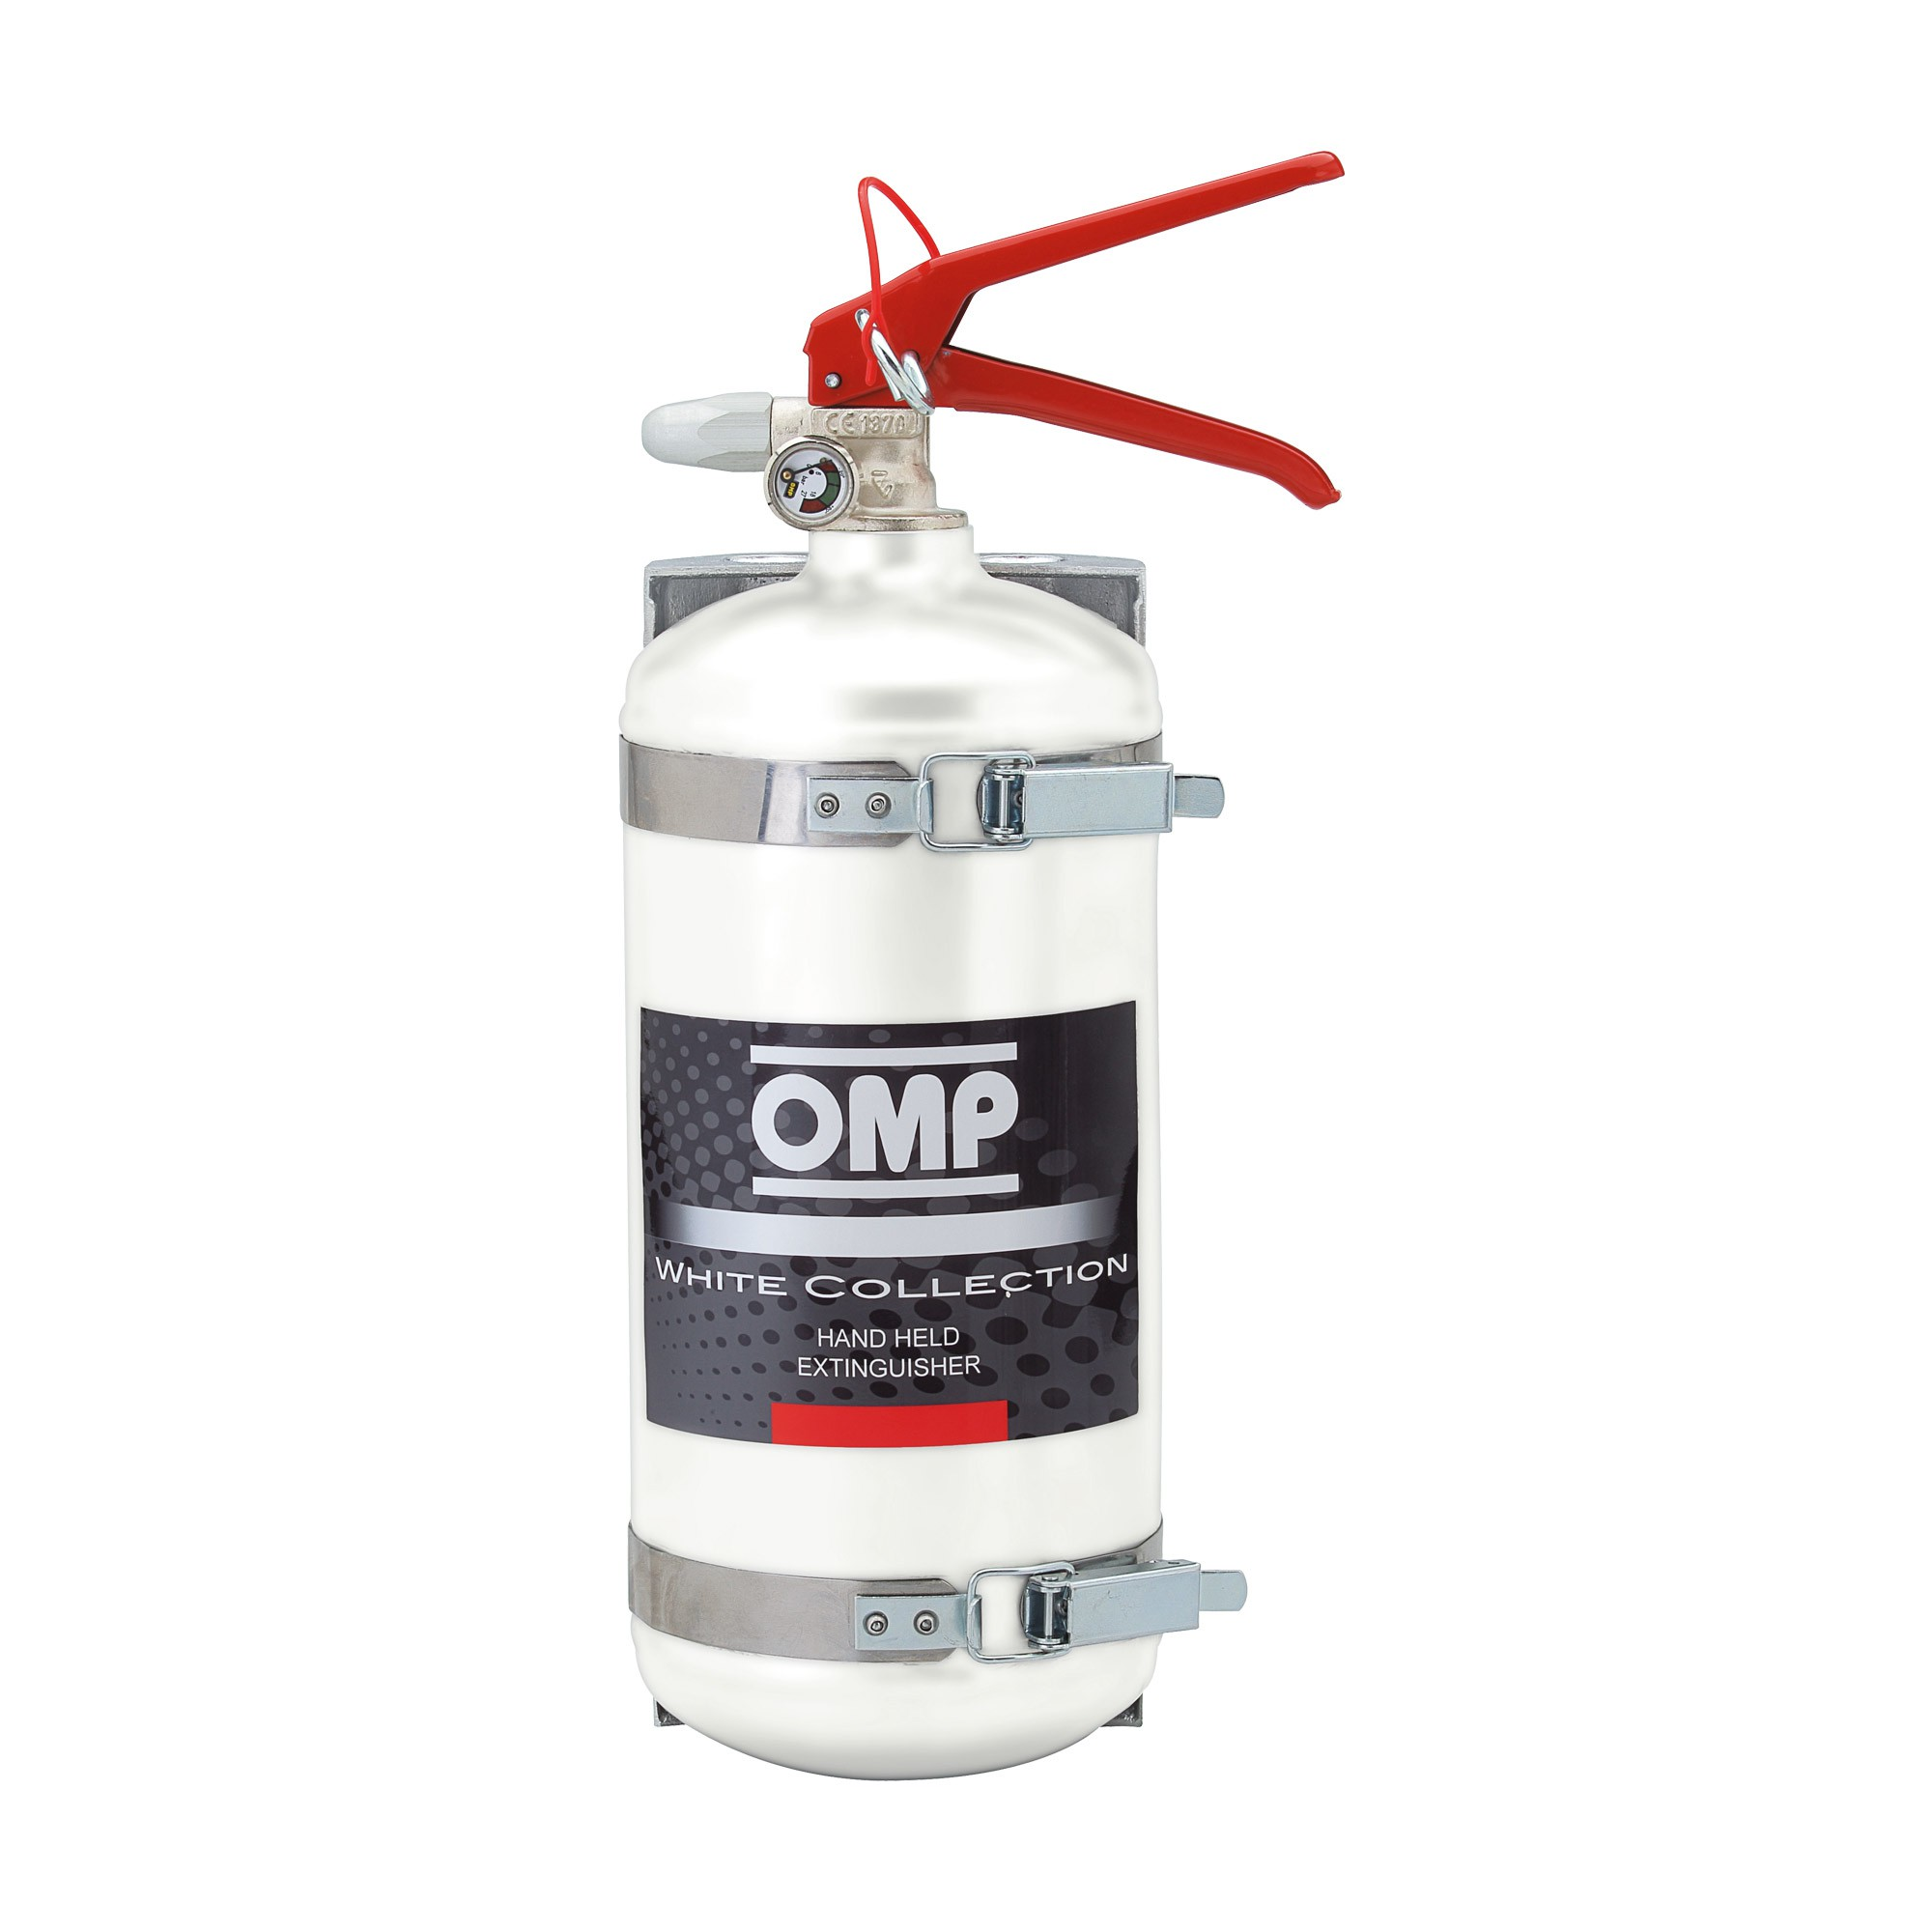 Car fire extinguisher - CBB/351